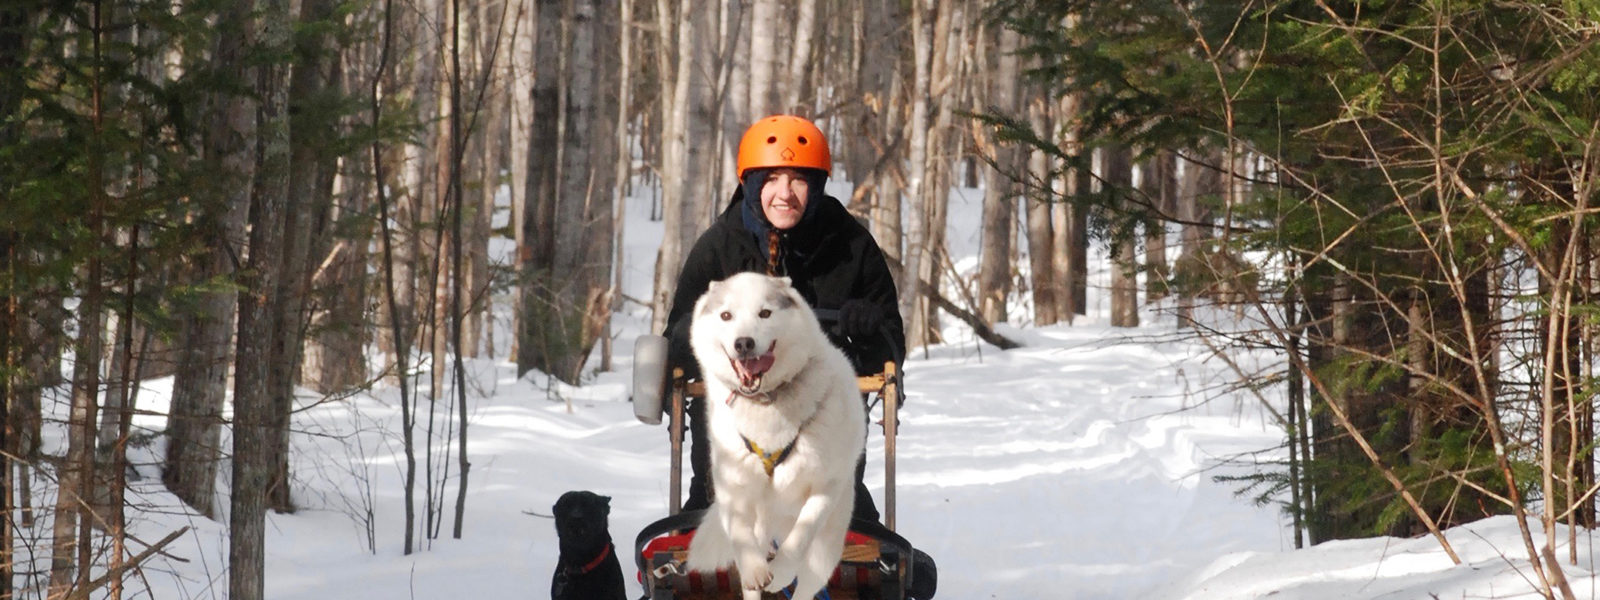 Northland College student Gretchen Hamernik-Winters dogsledding as part of internship.